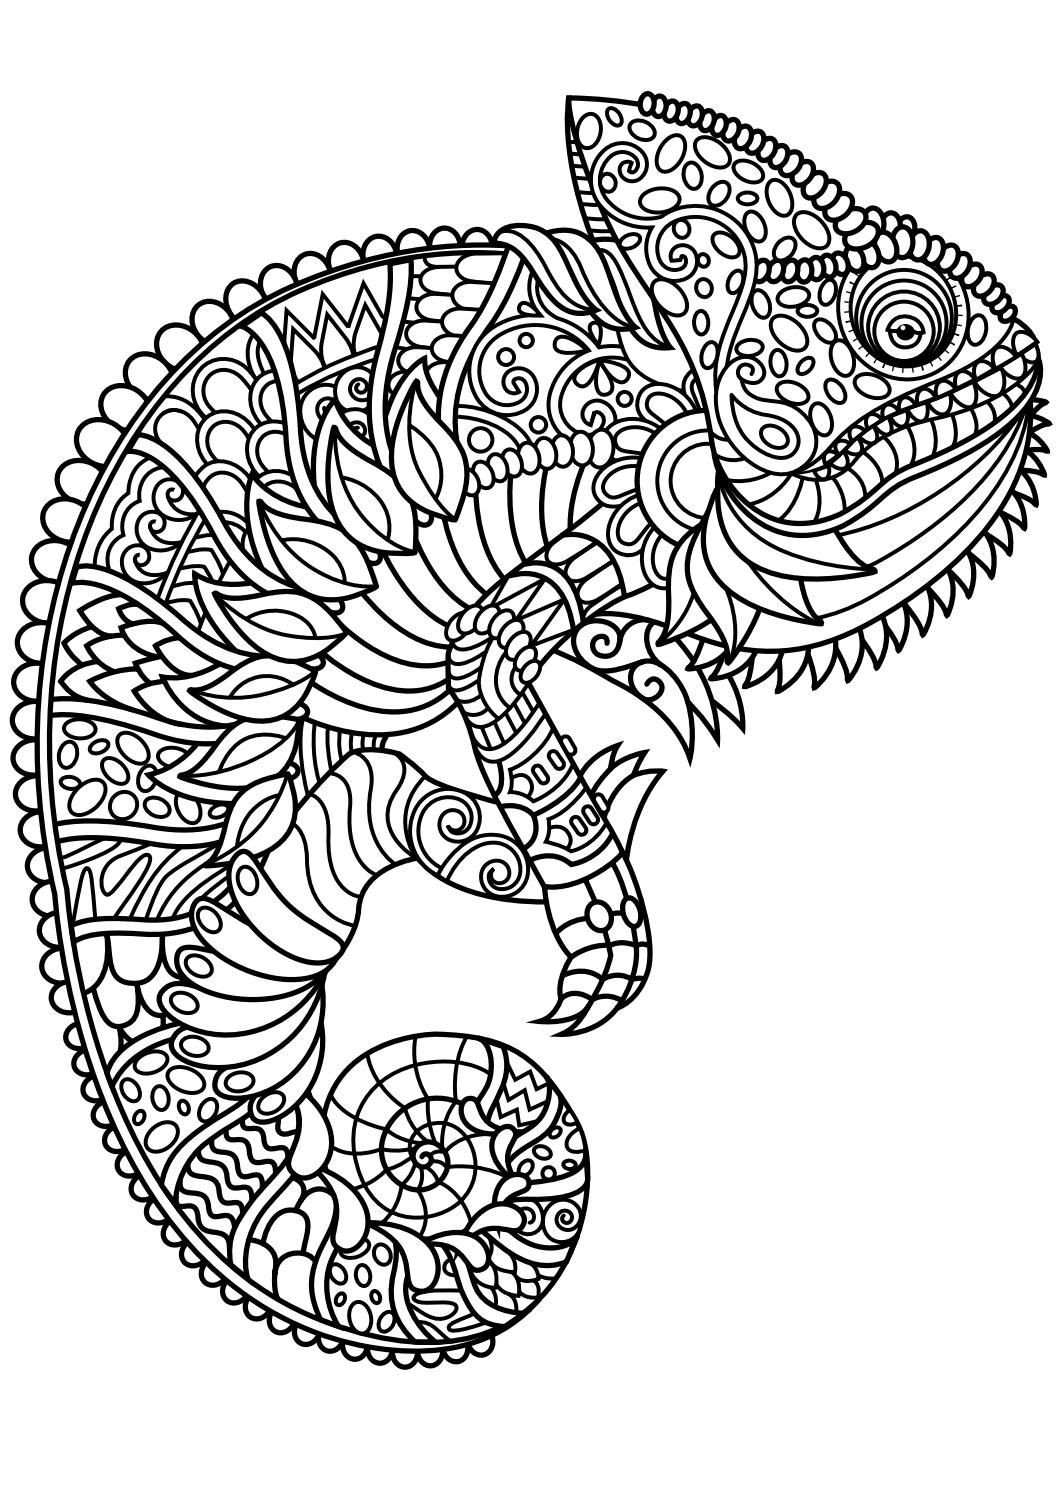 free baby animal coloring pages Download-Cute Baby Sea Animal Coloring Pages Animal Coloring Pages Pdf Coloring Animals Pinterest 4-n